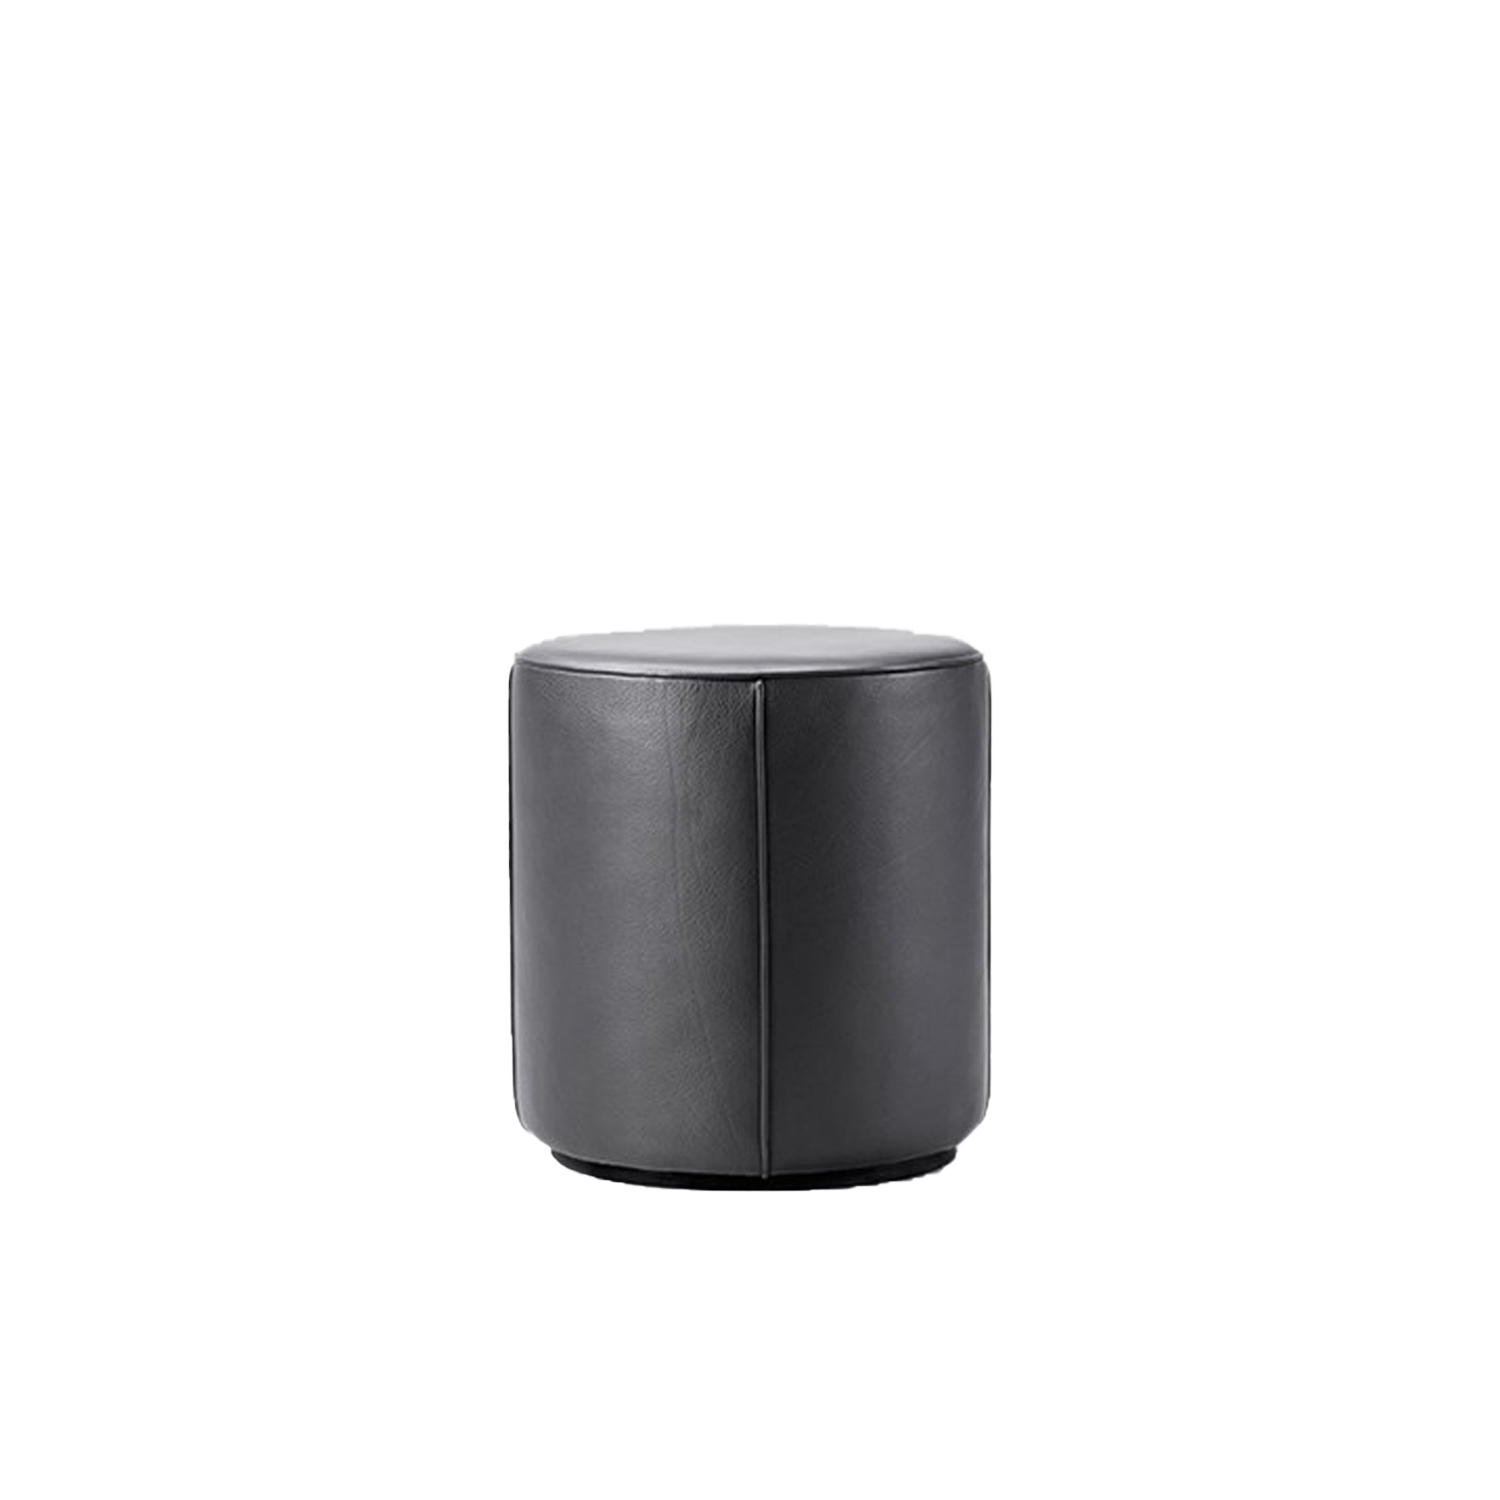 Mono Pouf Ø39 - Mono Pouf is a singular concept with a multitude of possibilities. Either as an appealing seating option, side table, footrest or decorative item, the cylindrical shape in different circumferences and heights makes Mono a welcome addition to any space. From retail and commercial venues to the hospitality and private sectors.  Fredericia introduces Complements – A new line of material-driven pieces conceived as collector's items to complement our portfolio.   Complements is a new collection of designs that join our main collection of furniture. A line of collectibles rooted in our passion for materiality comprised of functional pieces with aesthetic qualities that are equally appealing as decorative elements. From objects and small functional furniture to hidden gems from our archives with a renewed relevance.   With Complements, we expand on our expertise with materiality to encompass a range of accessories and furnishings that - together with our line of furniture - create a look and feel for an entire interior or concept.   Drawing on our legacy of working with wood and leather, we've explored other materials with textures, colours and compositions that bring an extra dimension to the atmosphere. The result is a celebration of materiality in well-considered concepts that are refined, authentic, inviting and crafted to last.   We're always open to designers, where we feel a strong connection with their work and a mutual mindset. For Complements, we've engaged with the next wave of new talent in Denmark and abroad. Both new and established names, who share our affinity for honest materials and purposeful design.   Complements remains true to our design heritage at Fredericia while staying in tune with the world at large. Each piece is distinctive, yet they all reflect our pioneering spirit to create essentials with presence and permanence.   Collectibles to cherish now – and for generations to come. | Matter of Stuff